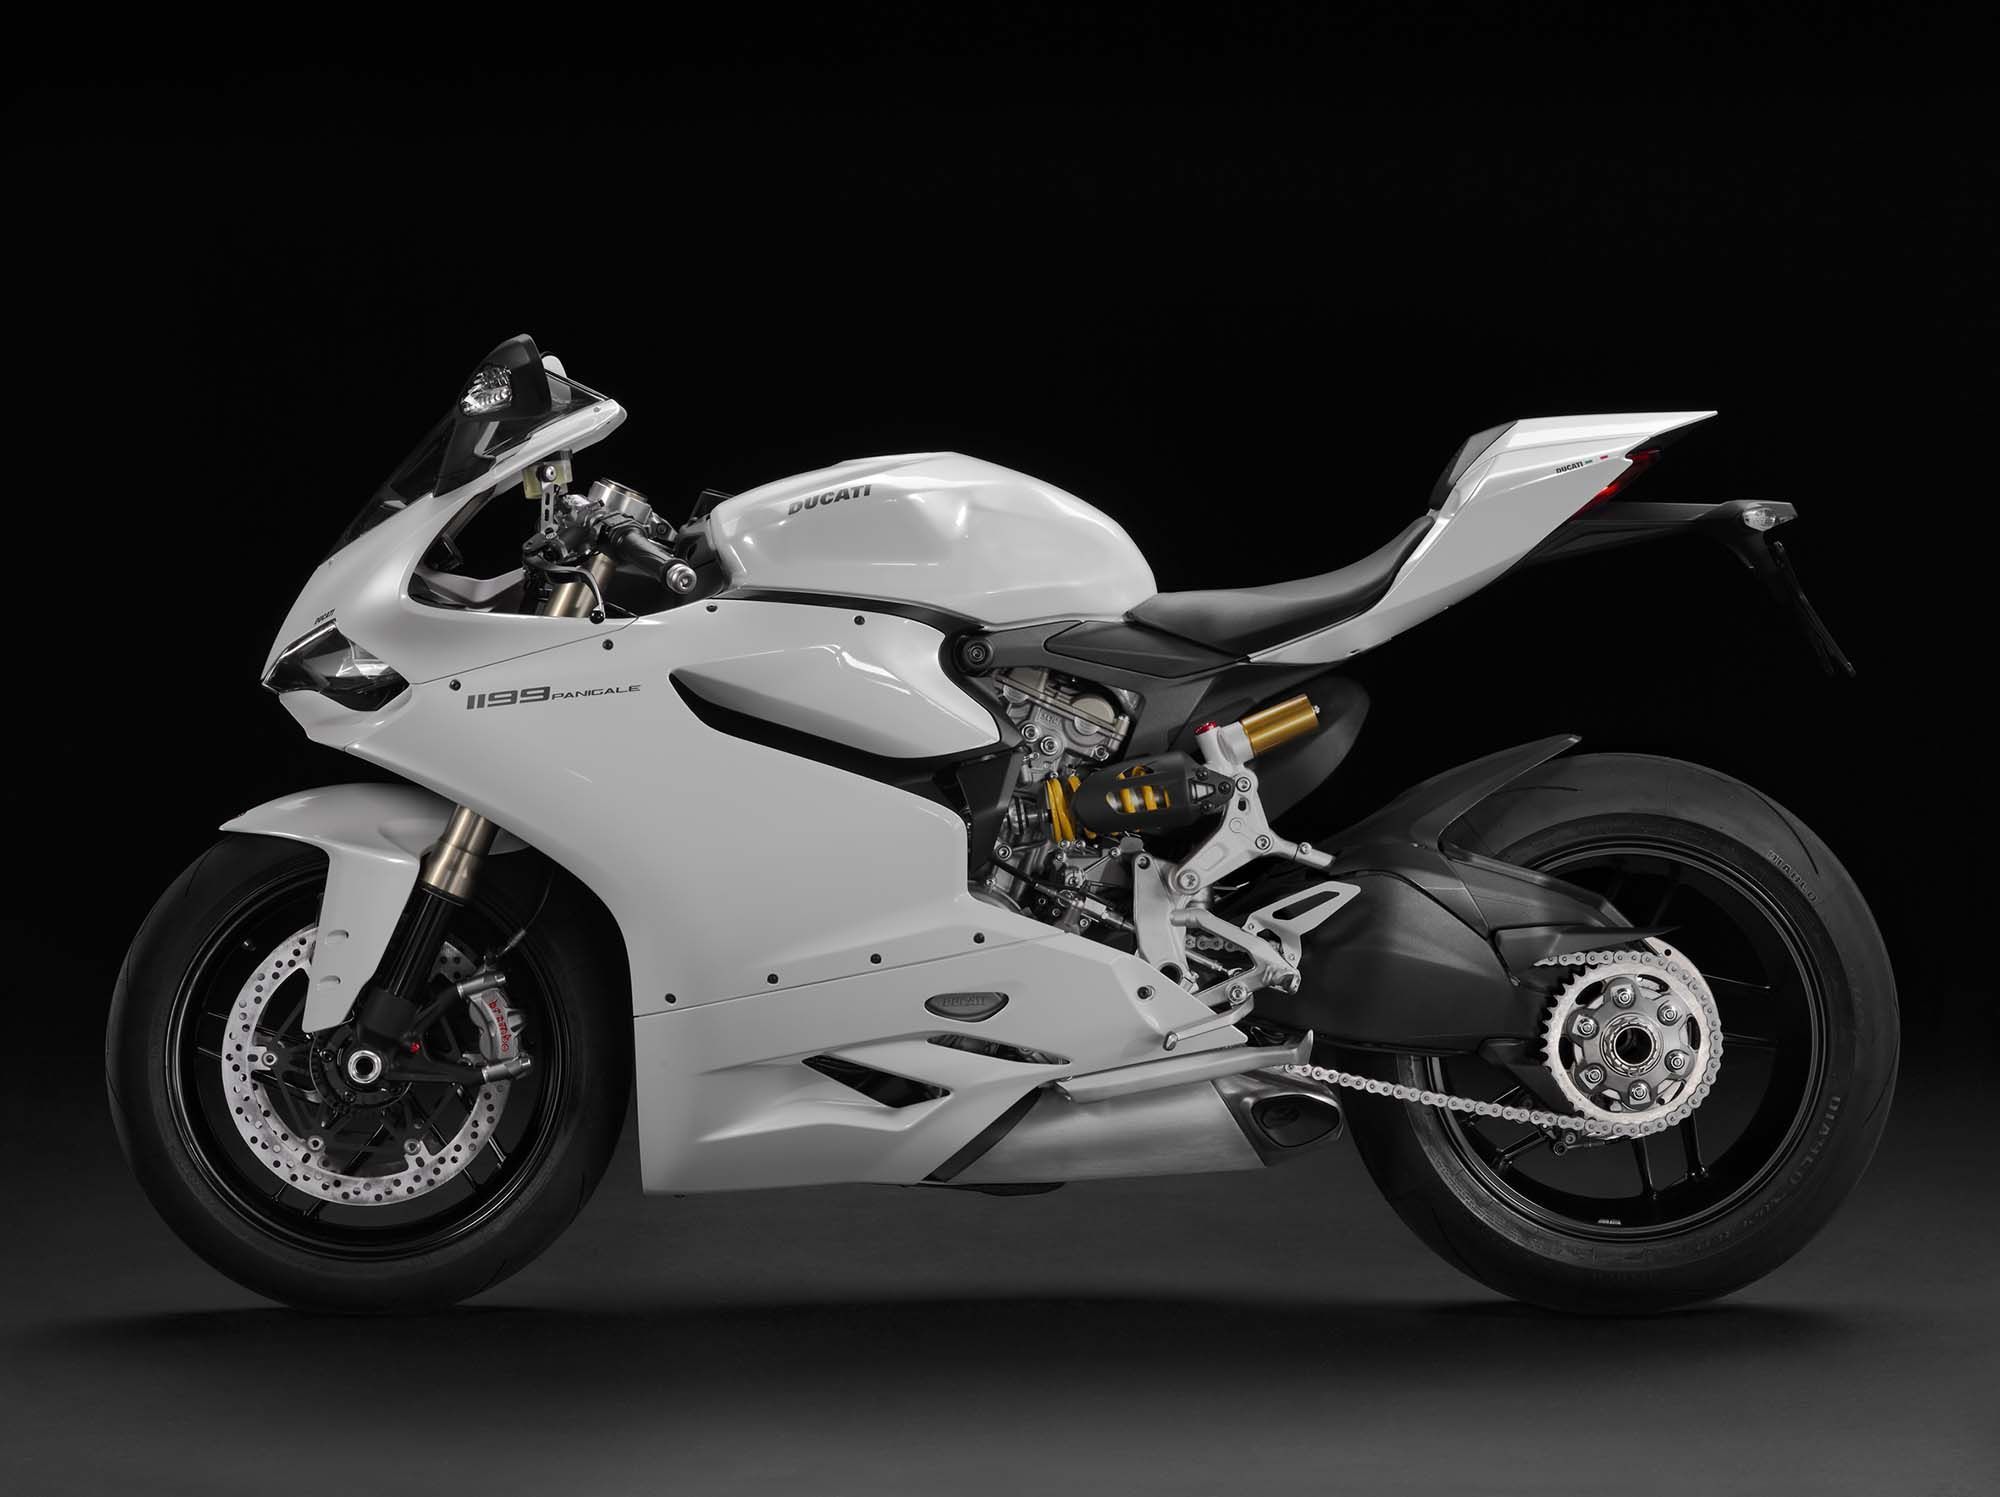 Another View Of The Ducati 1199 Panigale Arctic White 2013 Model